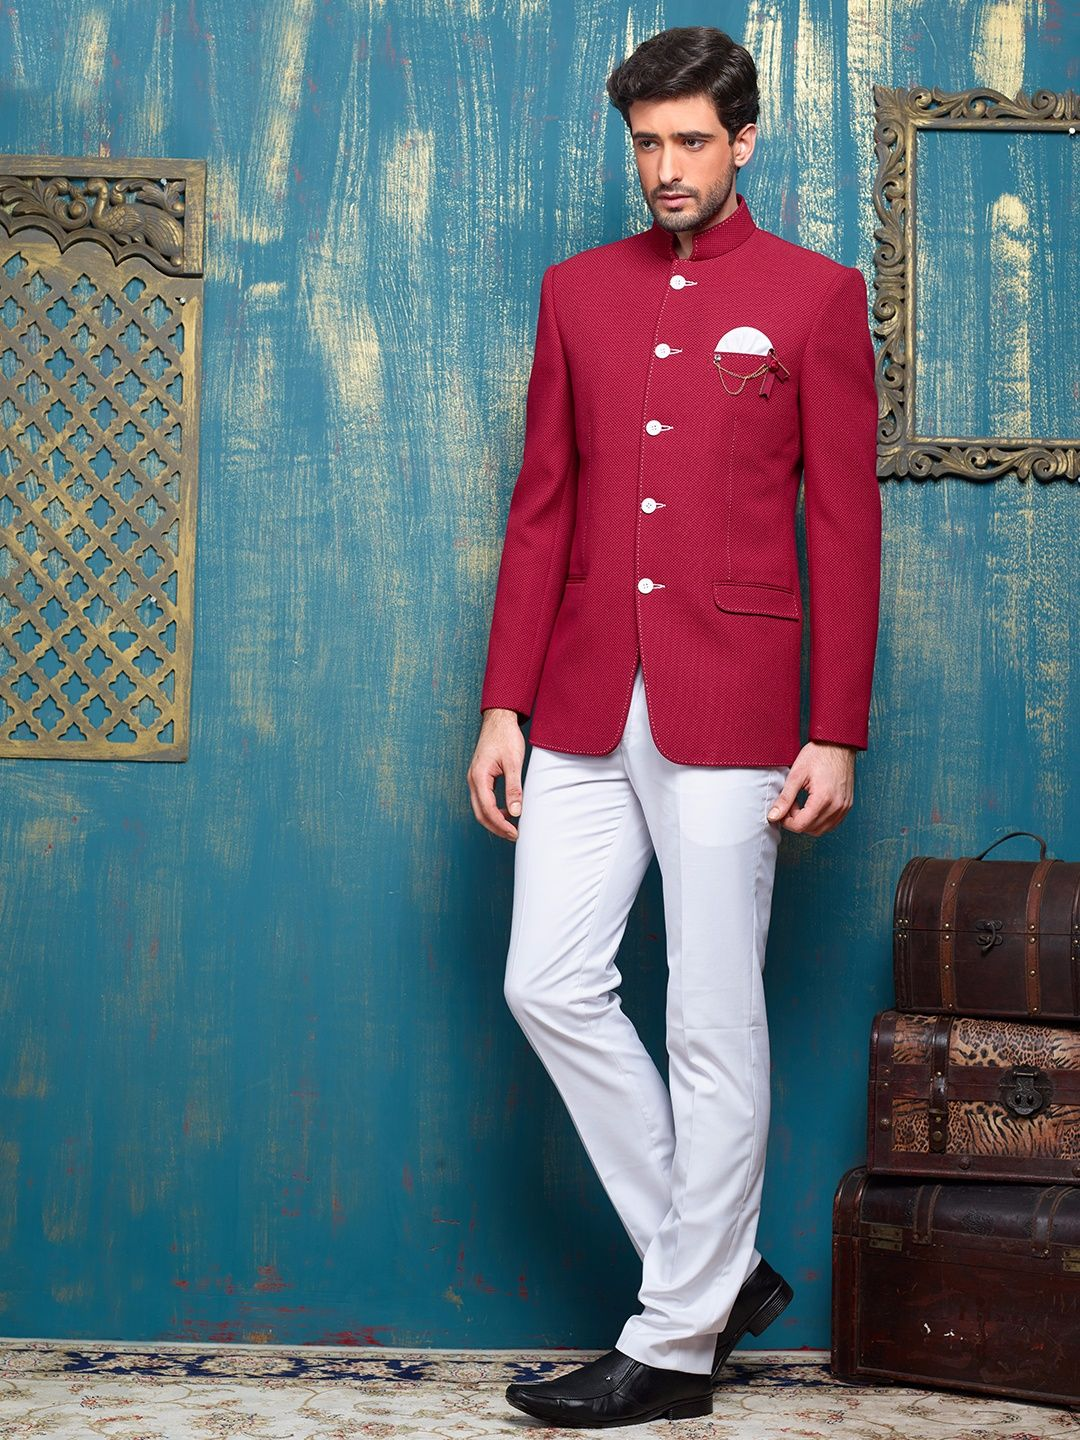 Classy Red Terry Rayon Jodhpuri Suit | Buy Coat Suits at G3 fashion ...